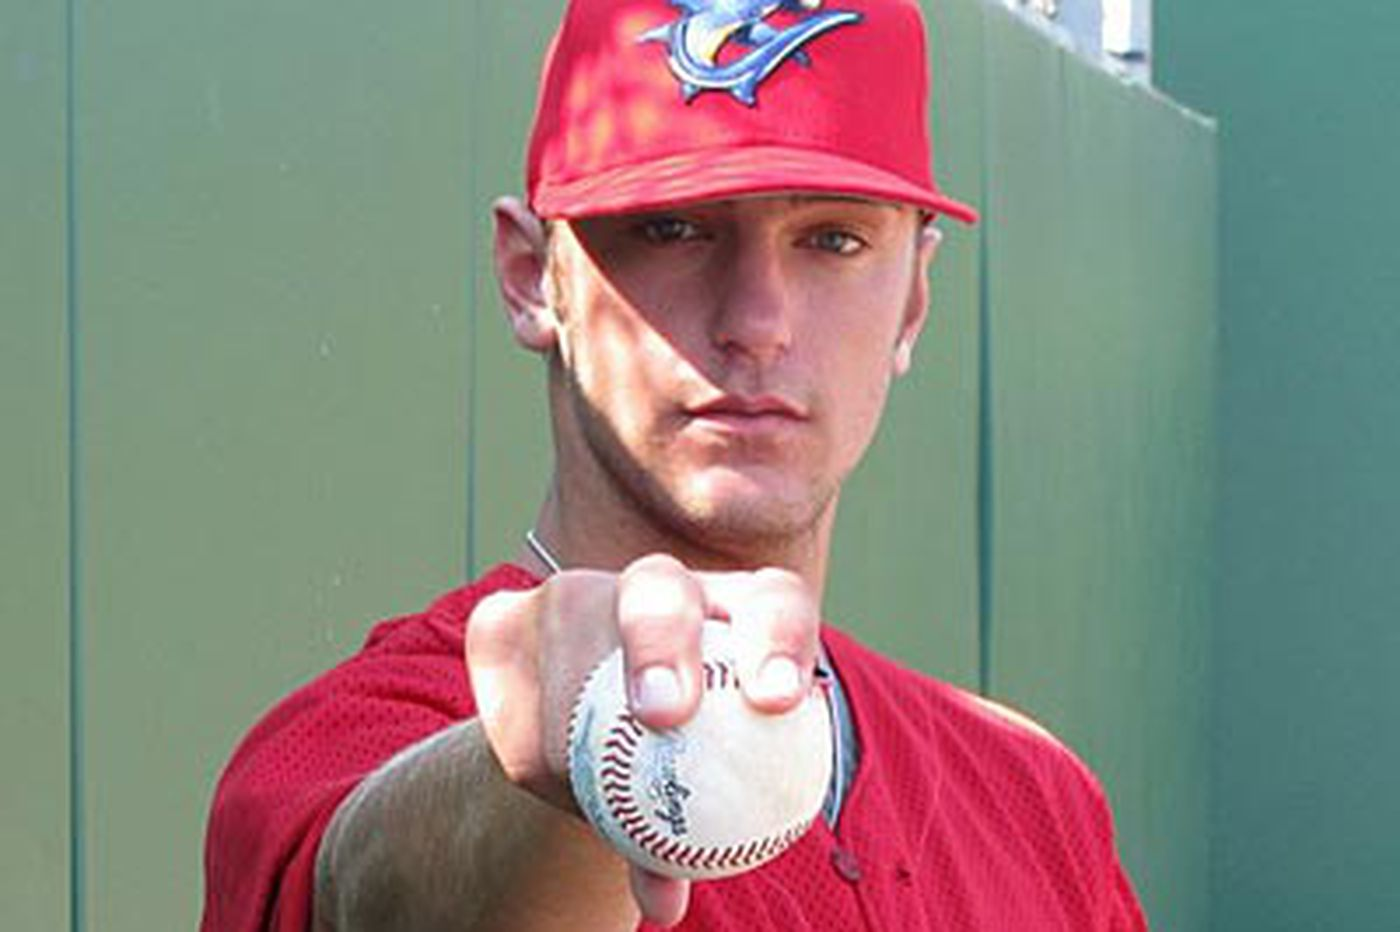 Phillies prospect Cosart is finally healthy and displaying promise